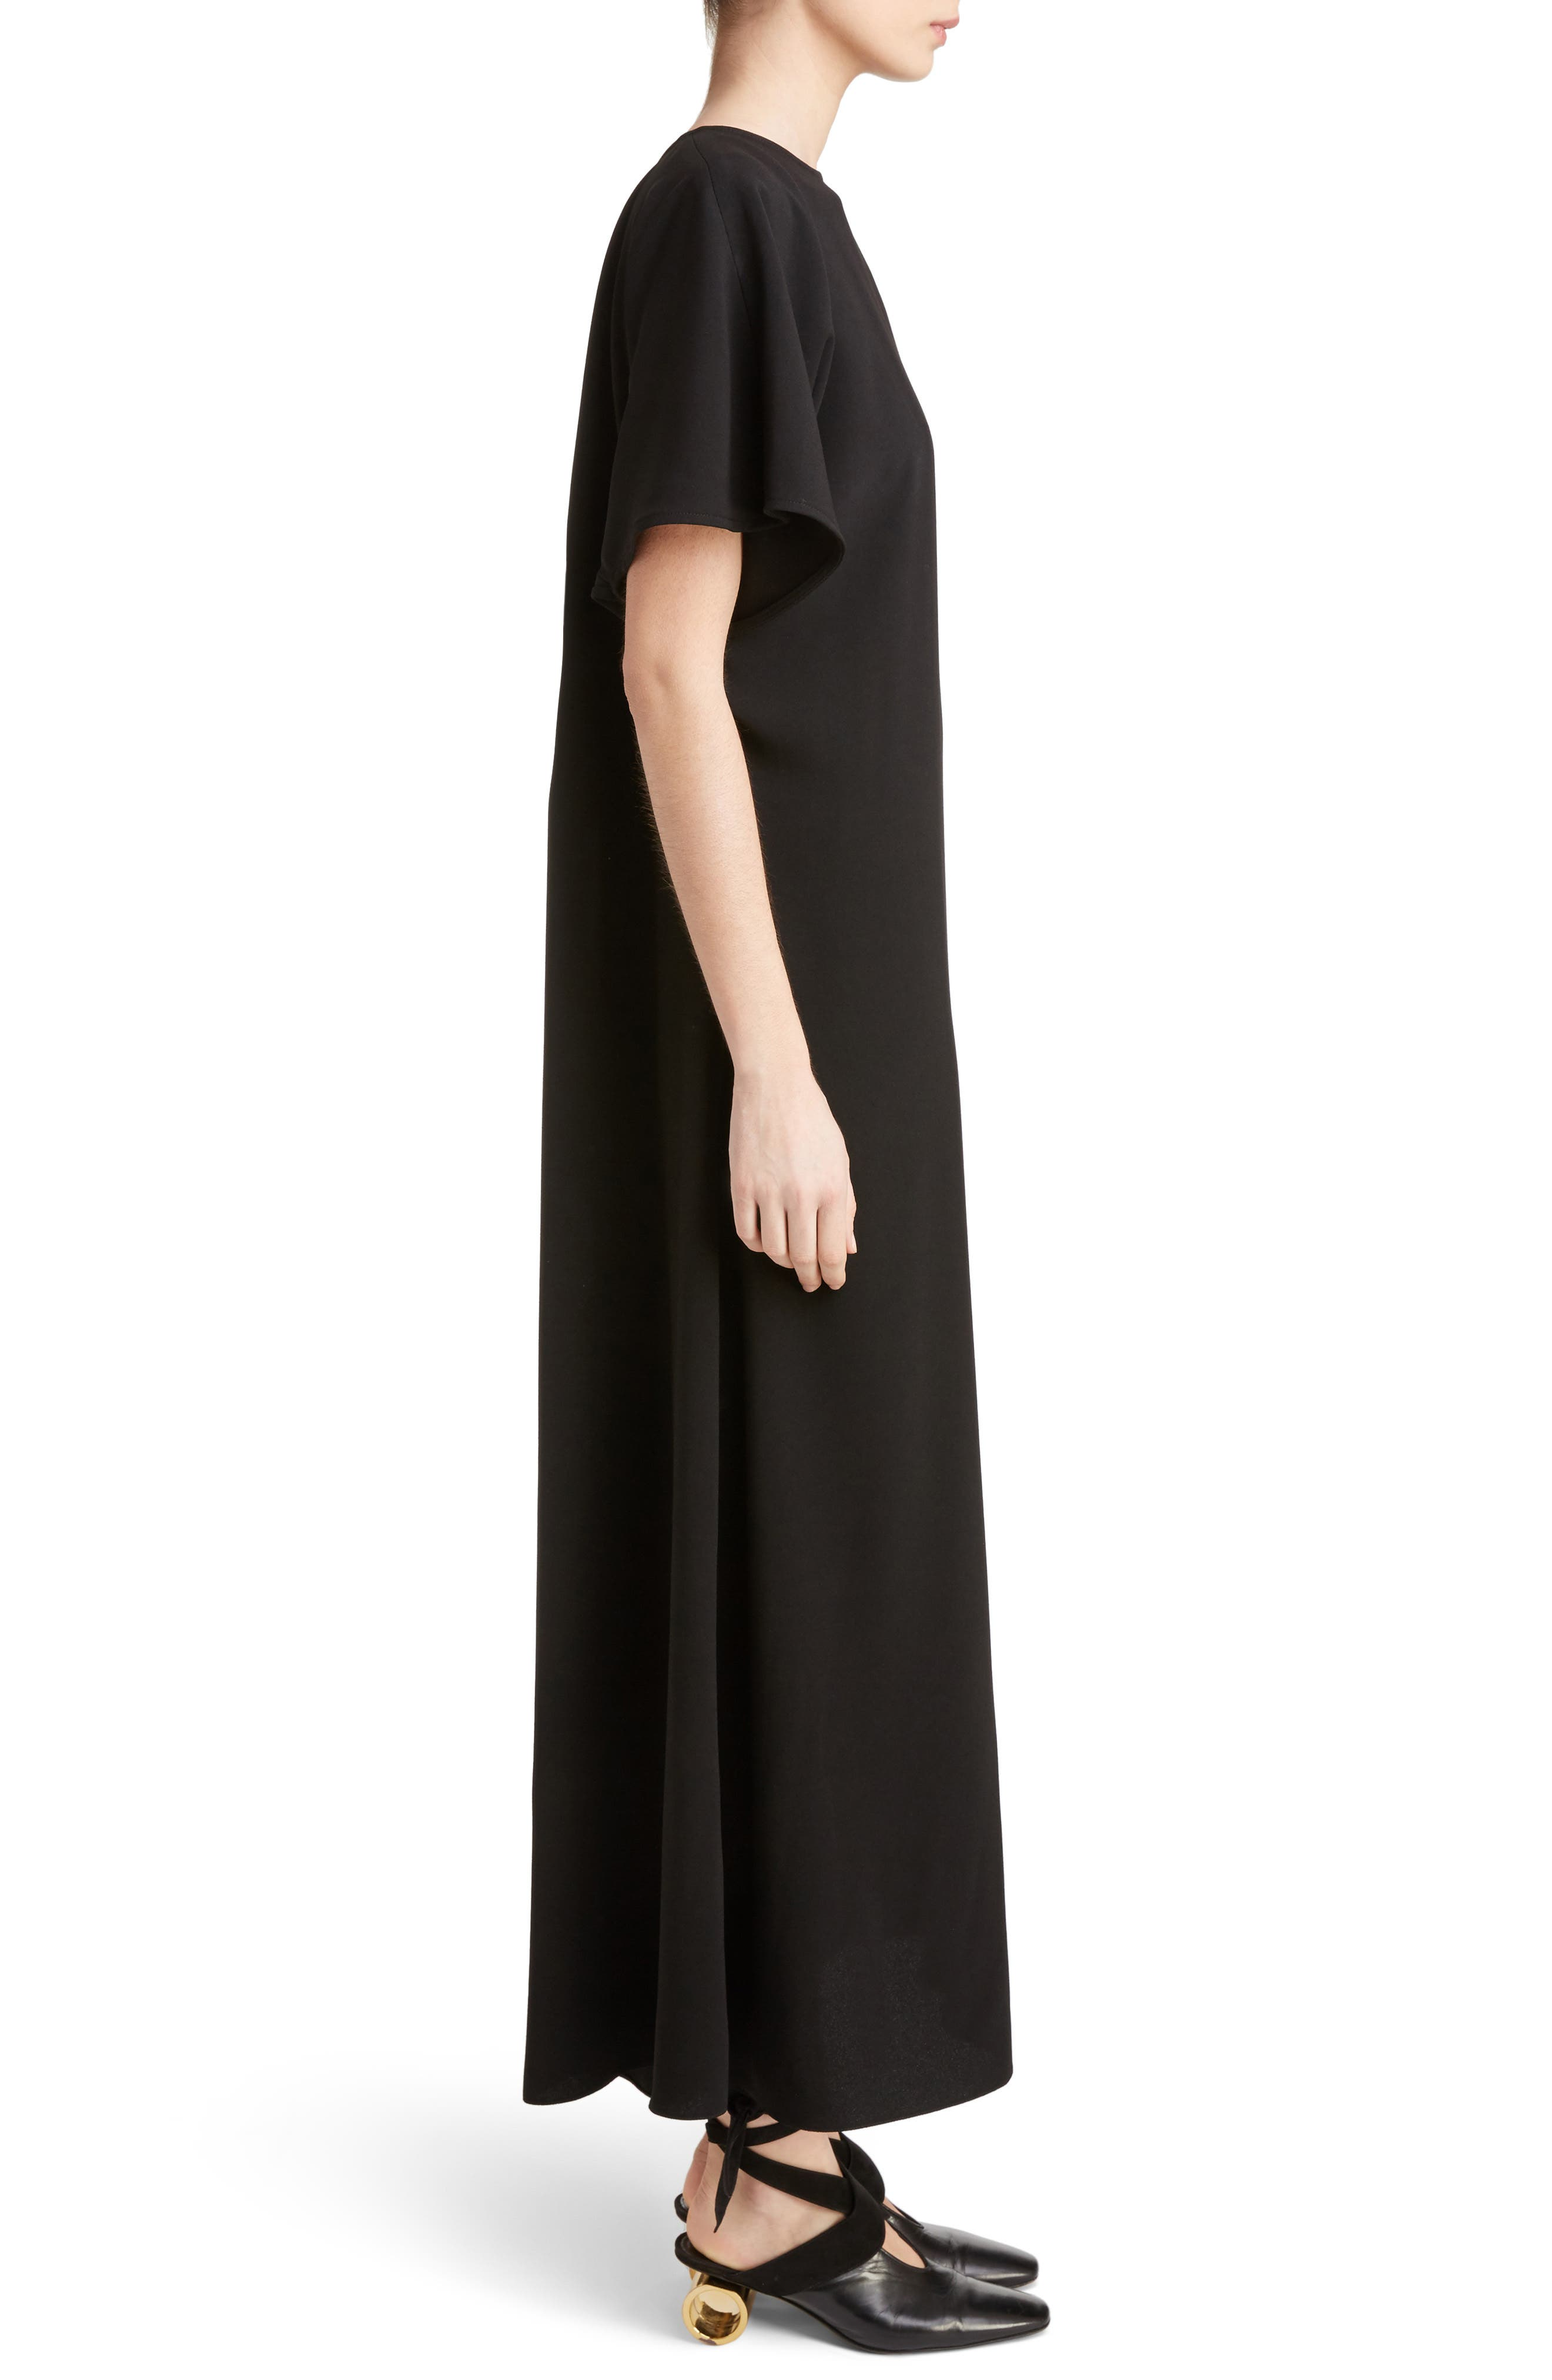 J.W.ANDERSON Cap Sleeve Maxi Dress,                             Alternate thumbnail 3, color,                             Black